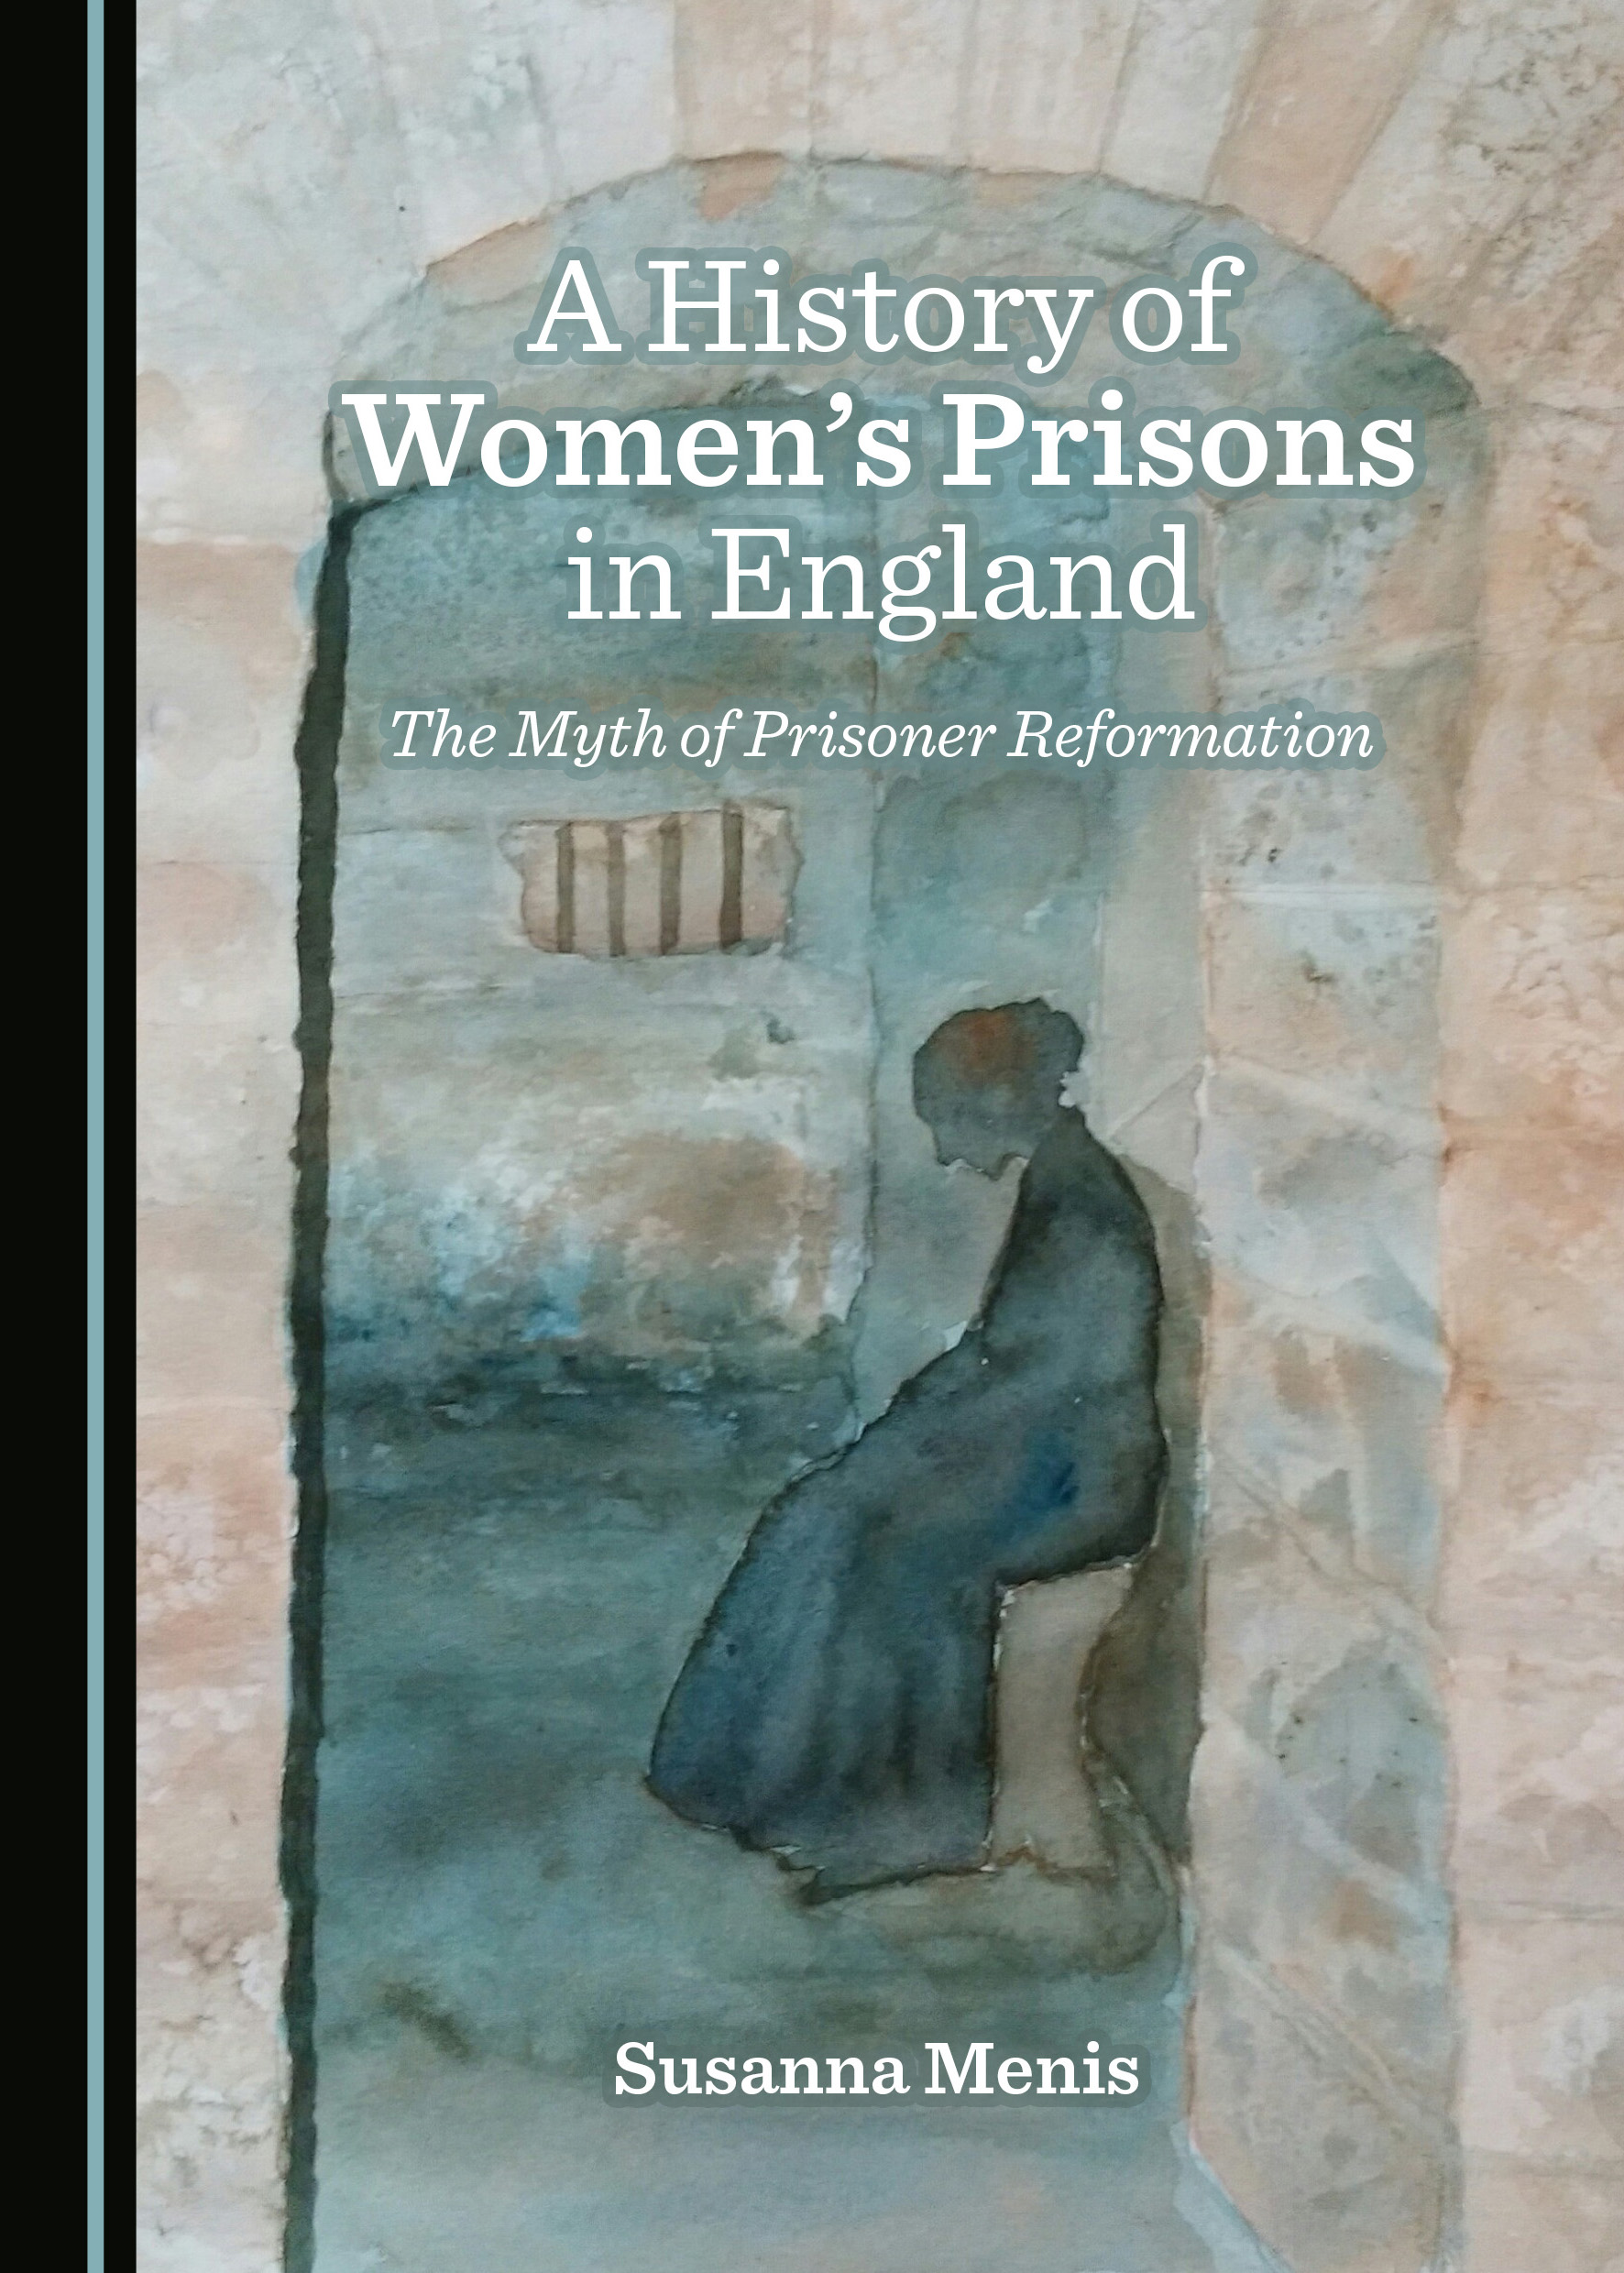 A History of Women's Prisons in England: The Myth of Prisoner Reformation